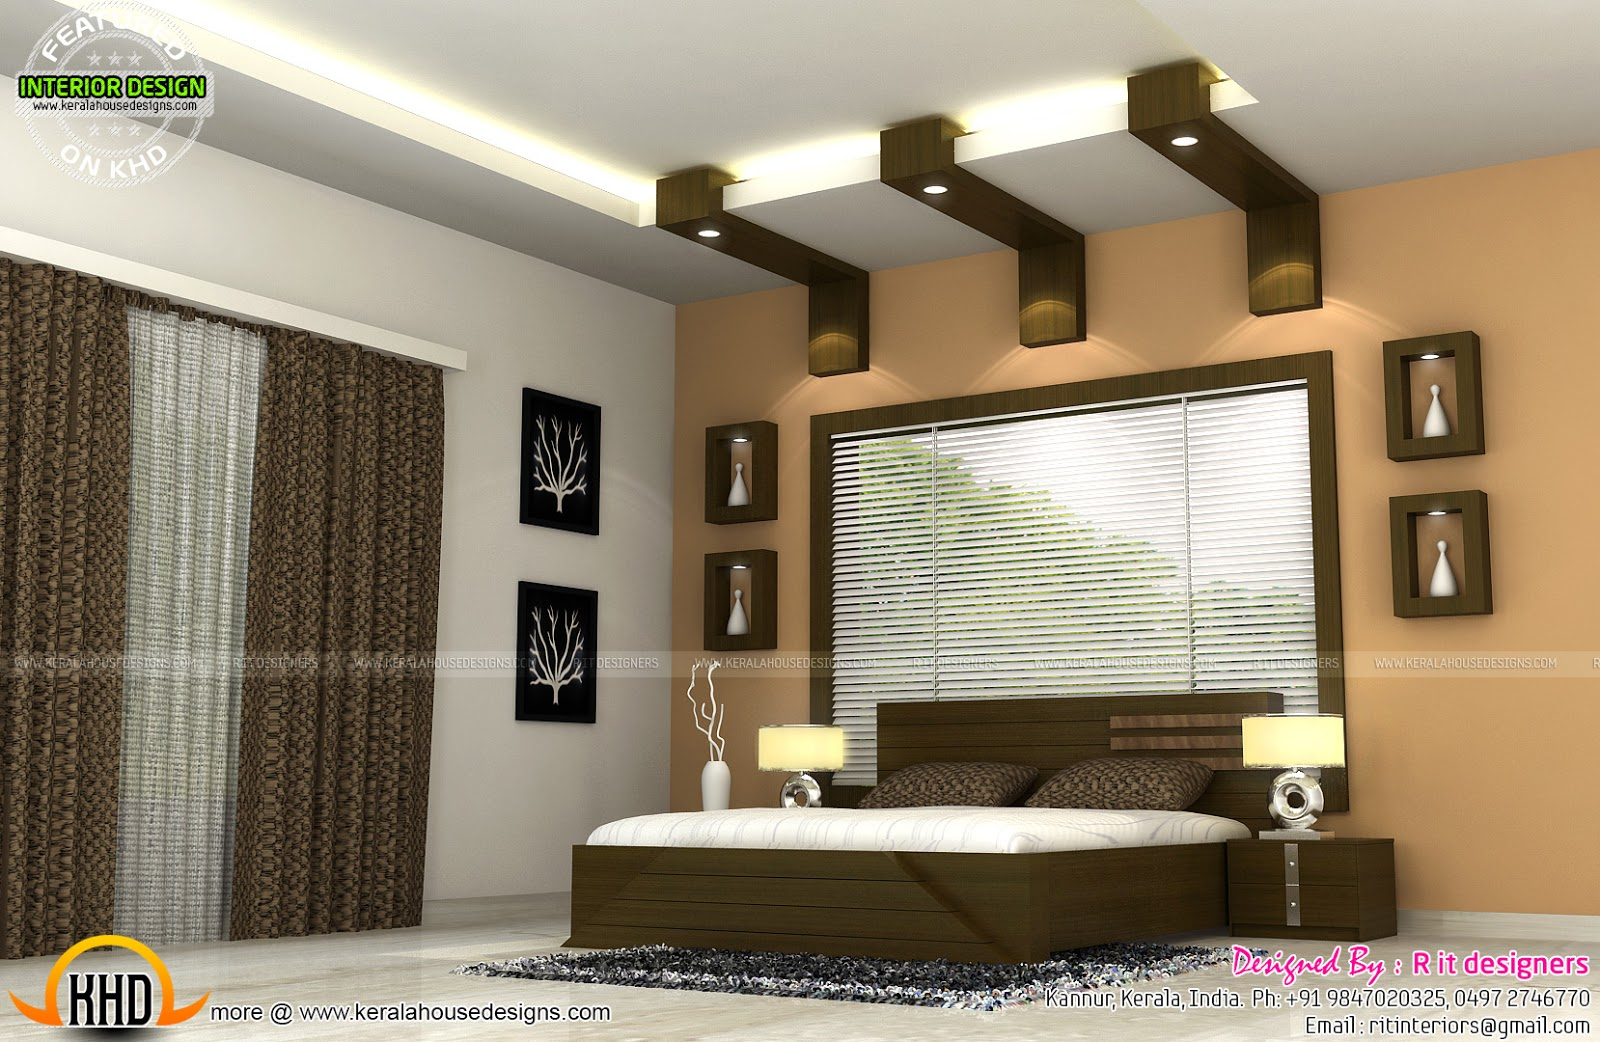 Interiors of bedrooms and kitchen kerala home design and 2 bedroom interior design